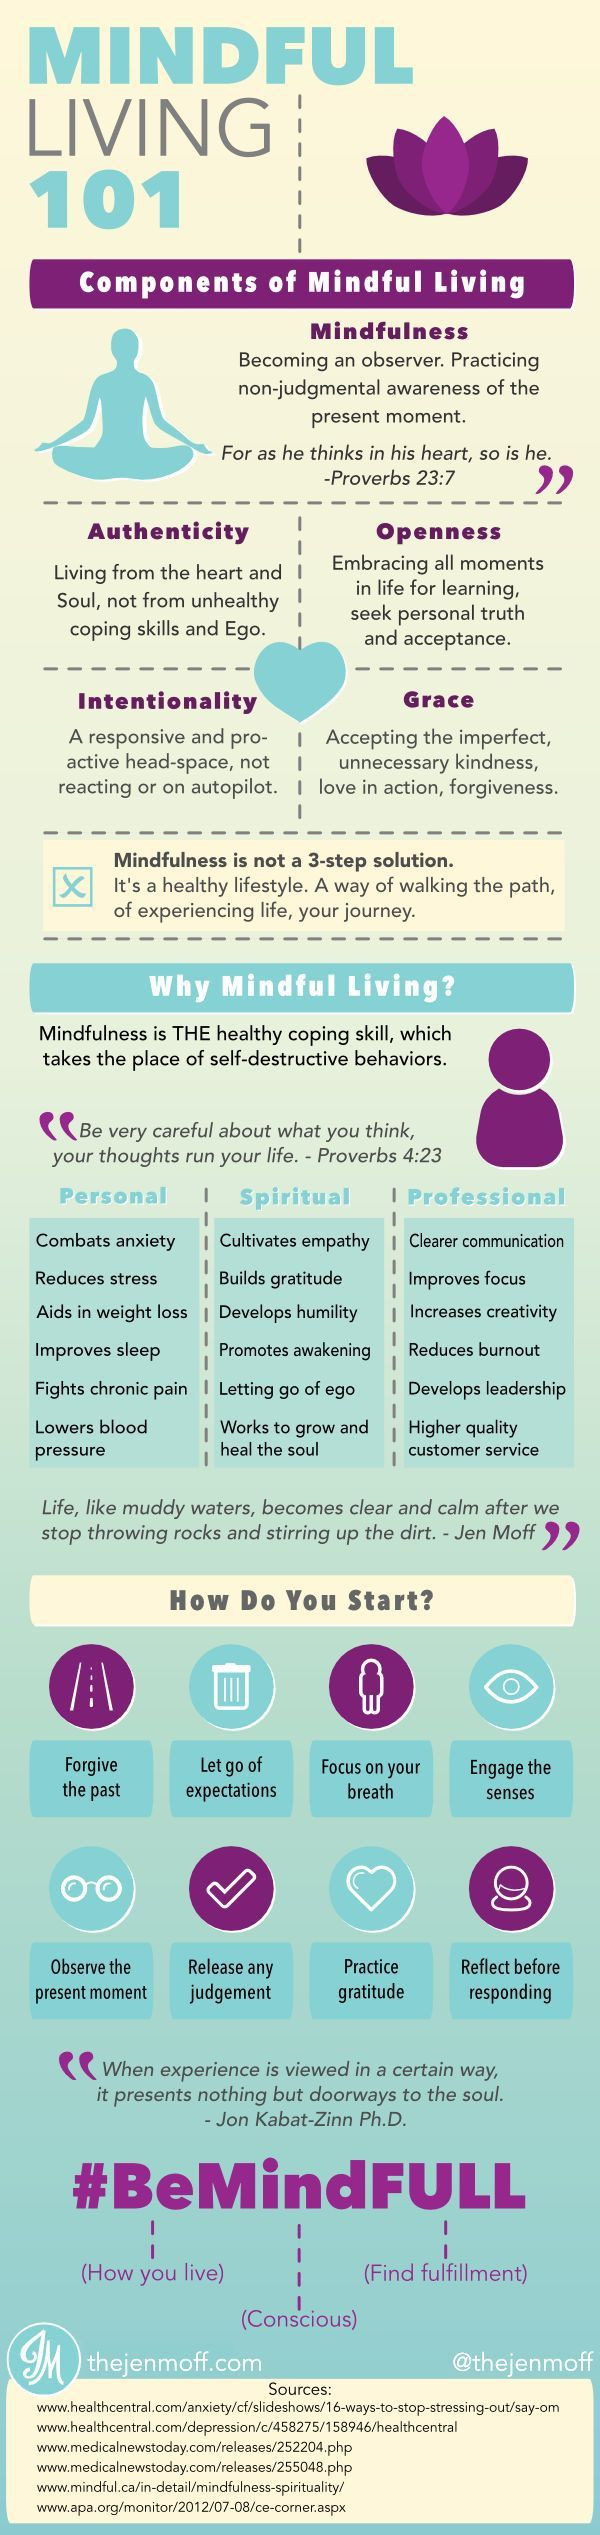 Mindful Living 101 Infographic on Behance Famous Quotes For Success